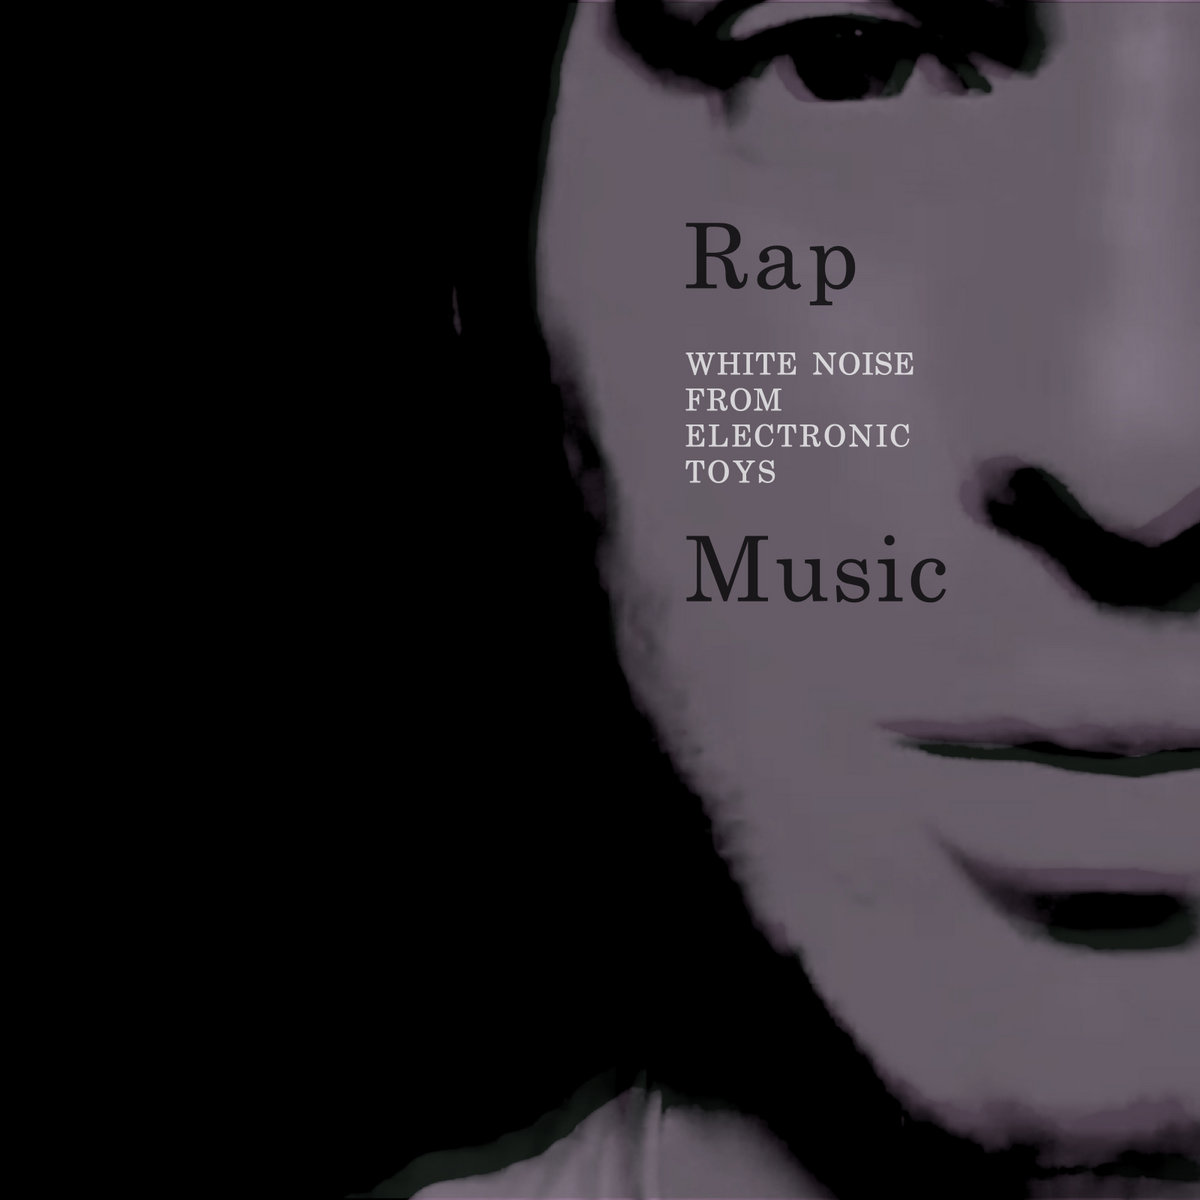 Rap music | White Noise from Electronic Toys